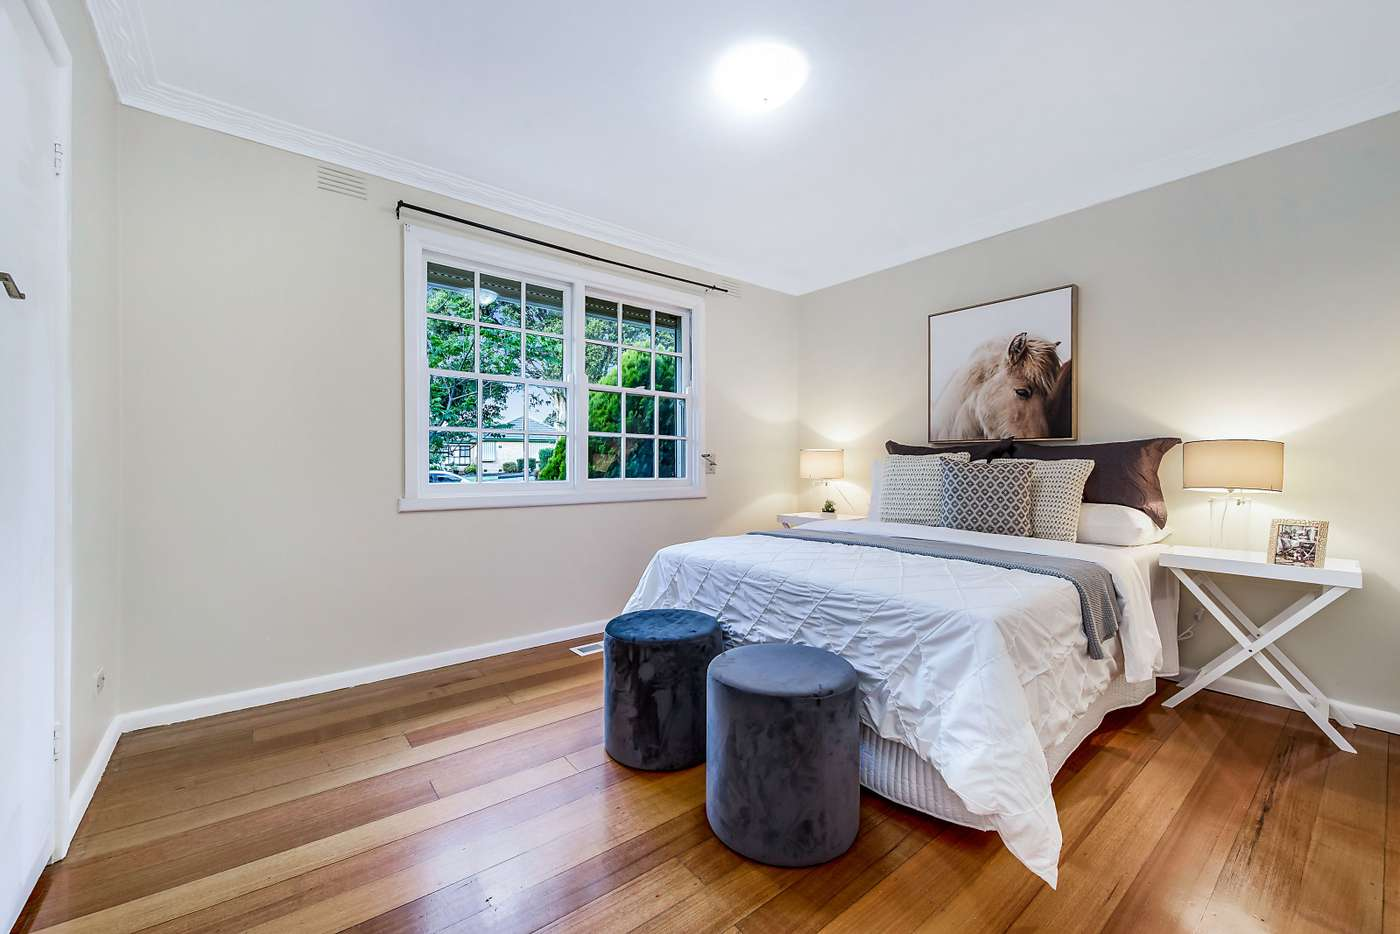 Sixth view of Homely house listing, 10A Caledonia Crescent, Mulgrave VIC 3170